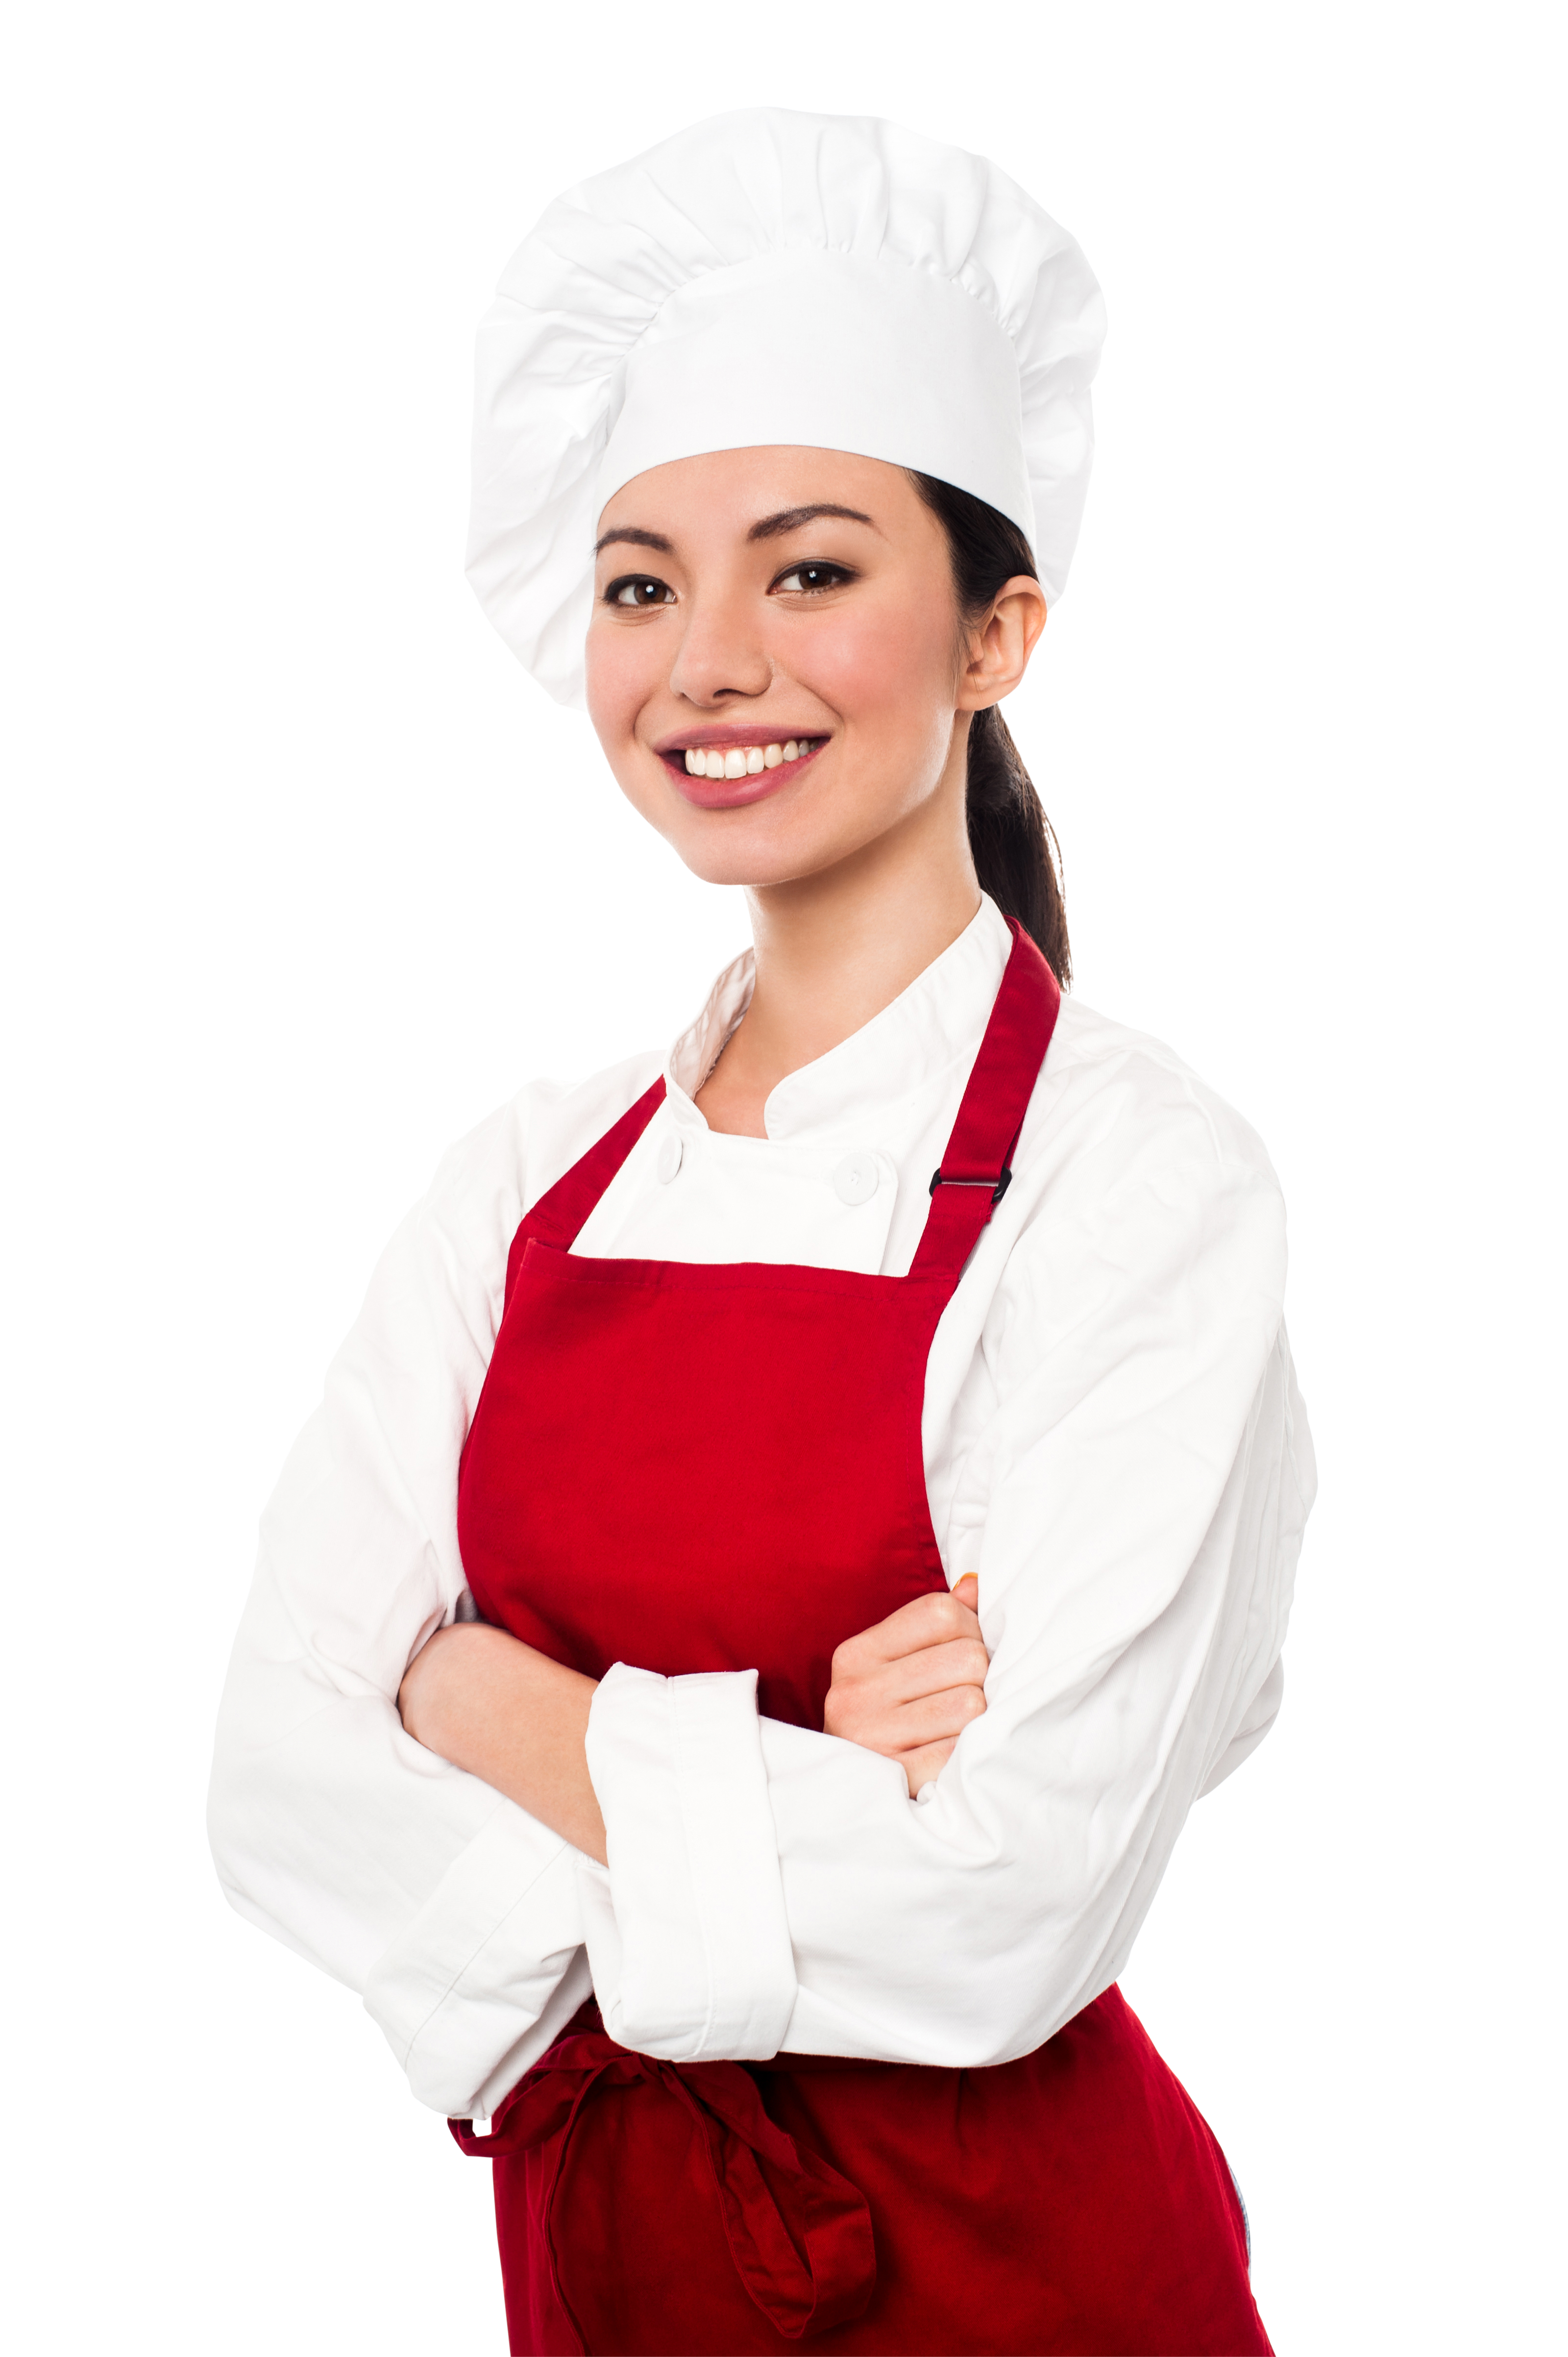 PNG Female Chef - 141759